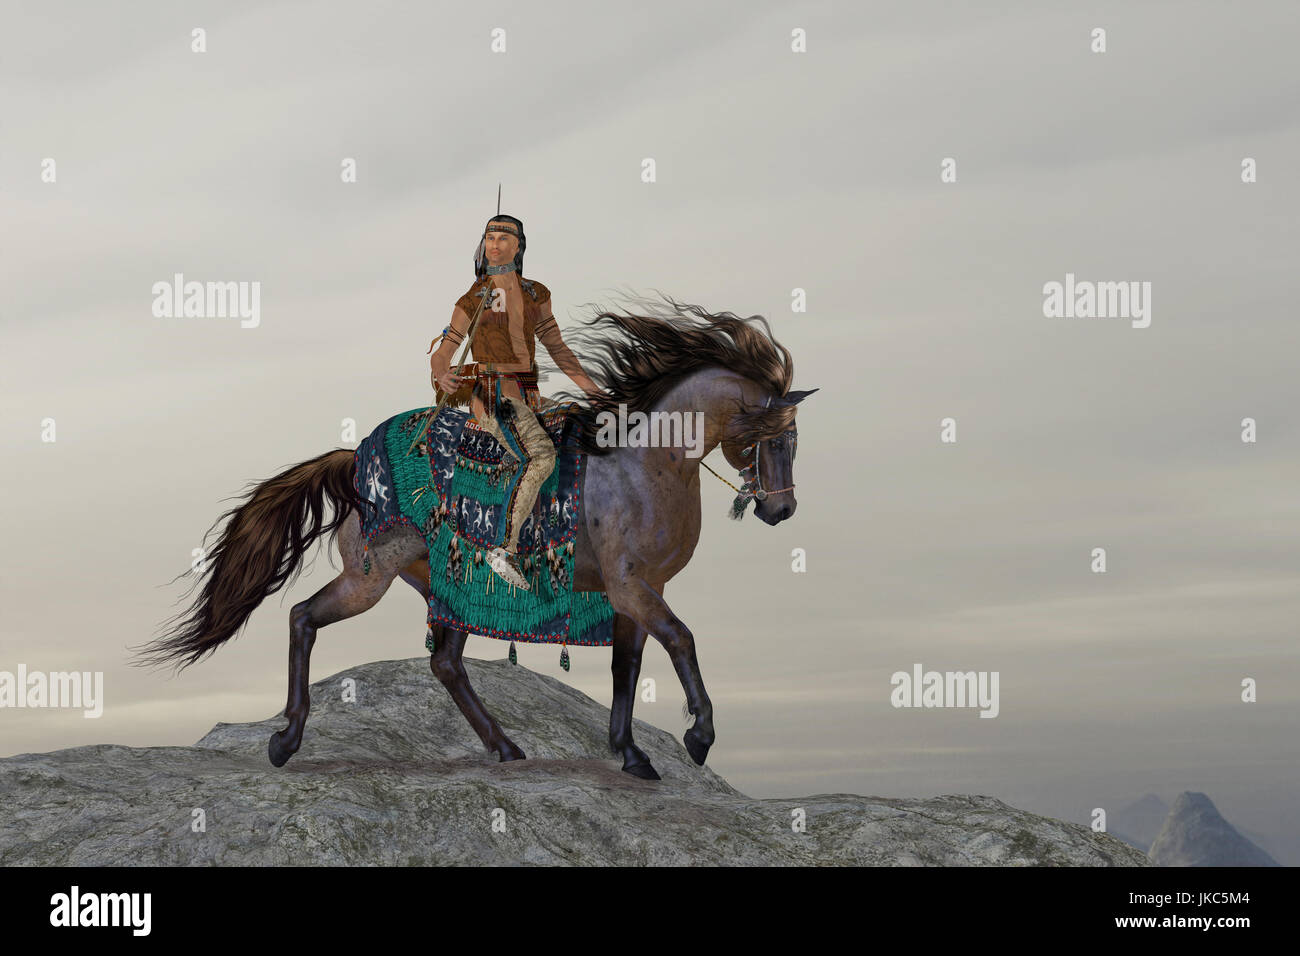 A North American Indian brave searches the mountains on his horse for big game to bring back to his tribe. - Stock Image